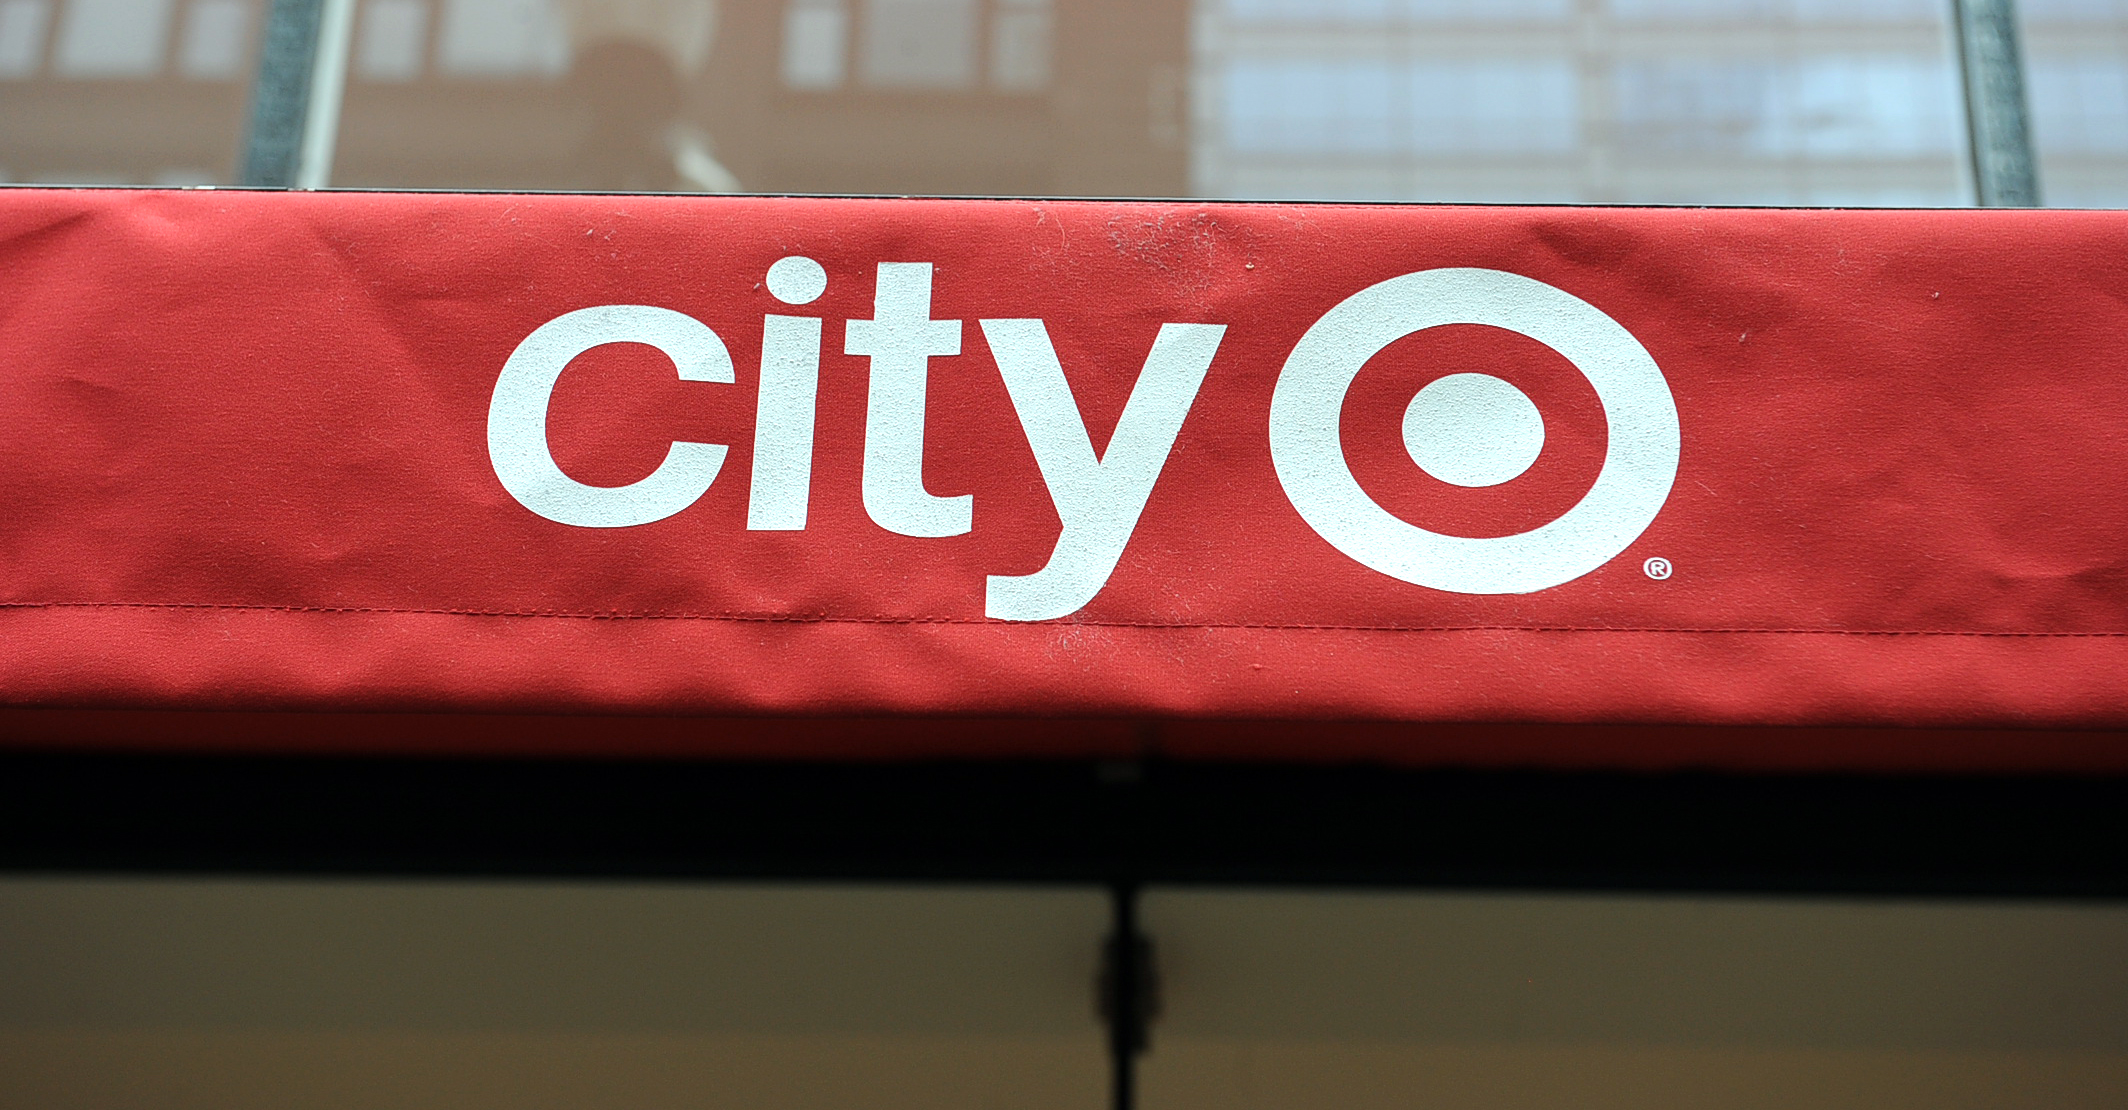 Target CEO Brian Cornell met with several Chicago business owners Tuesday to talk about his career, the future of Target and the possibility of physical expansion in Chicago in coming years.